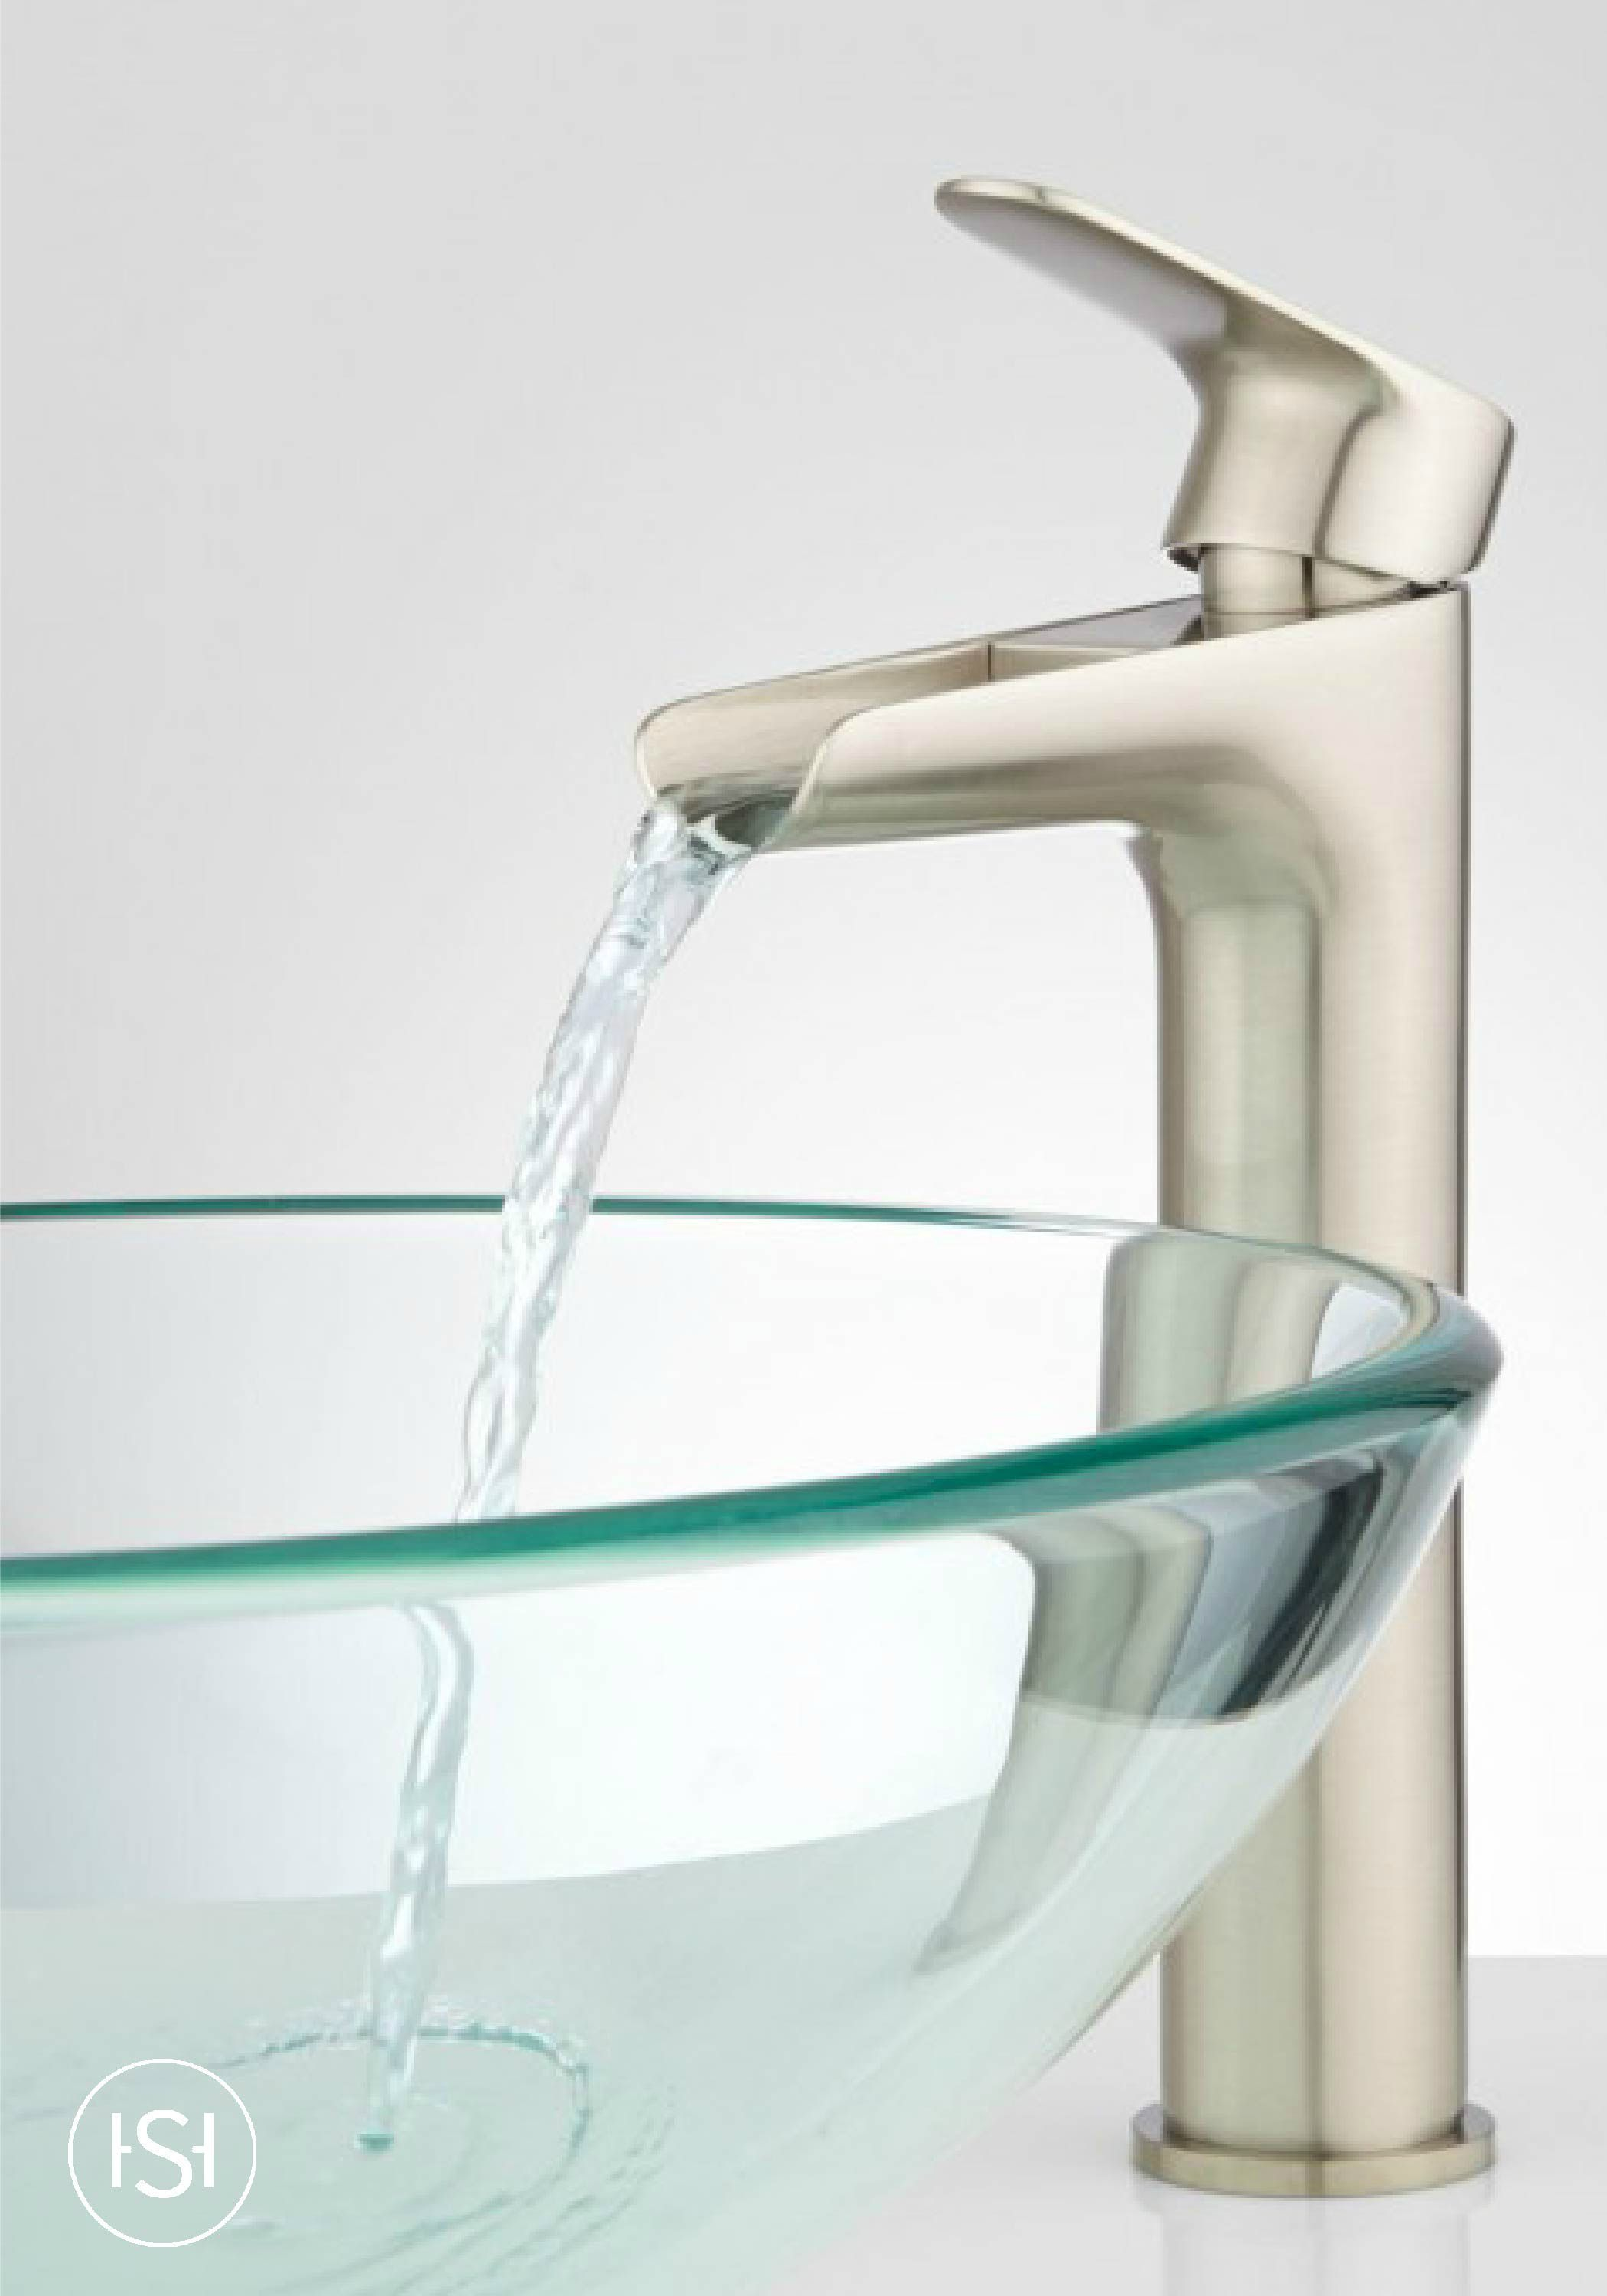 Pagosa Waterfall Vessel Faucet The Signature Bathroom Vessel with regard to dimensions 2100 X 3000